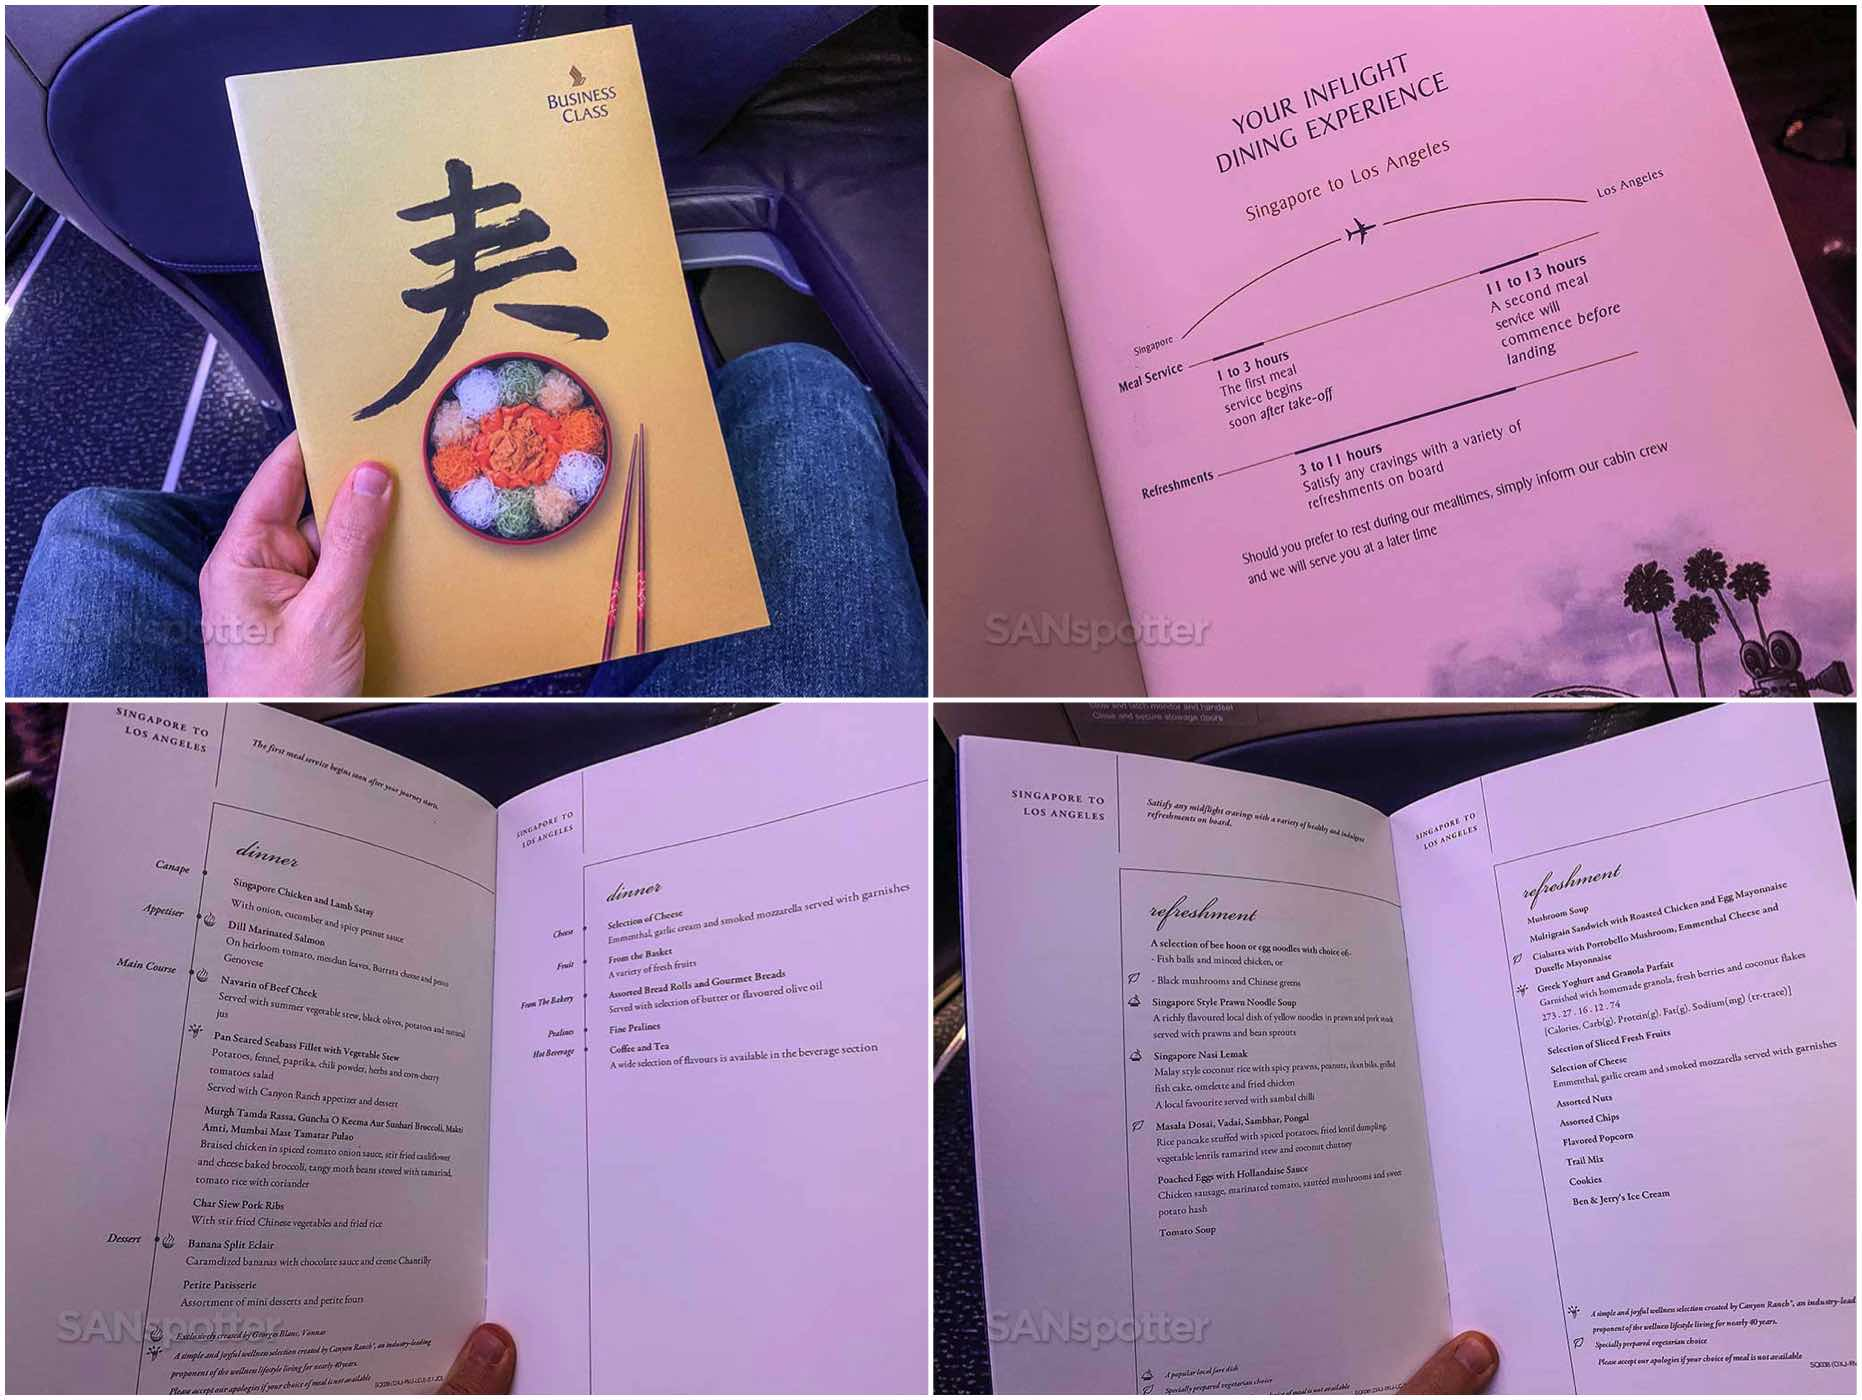 Singapore Airlines SIN-LAX business class menu